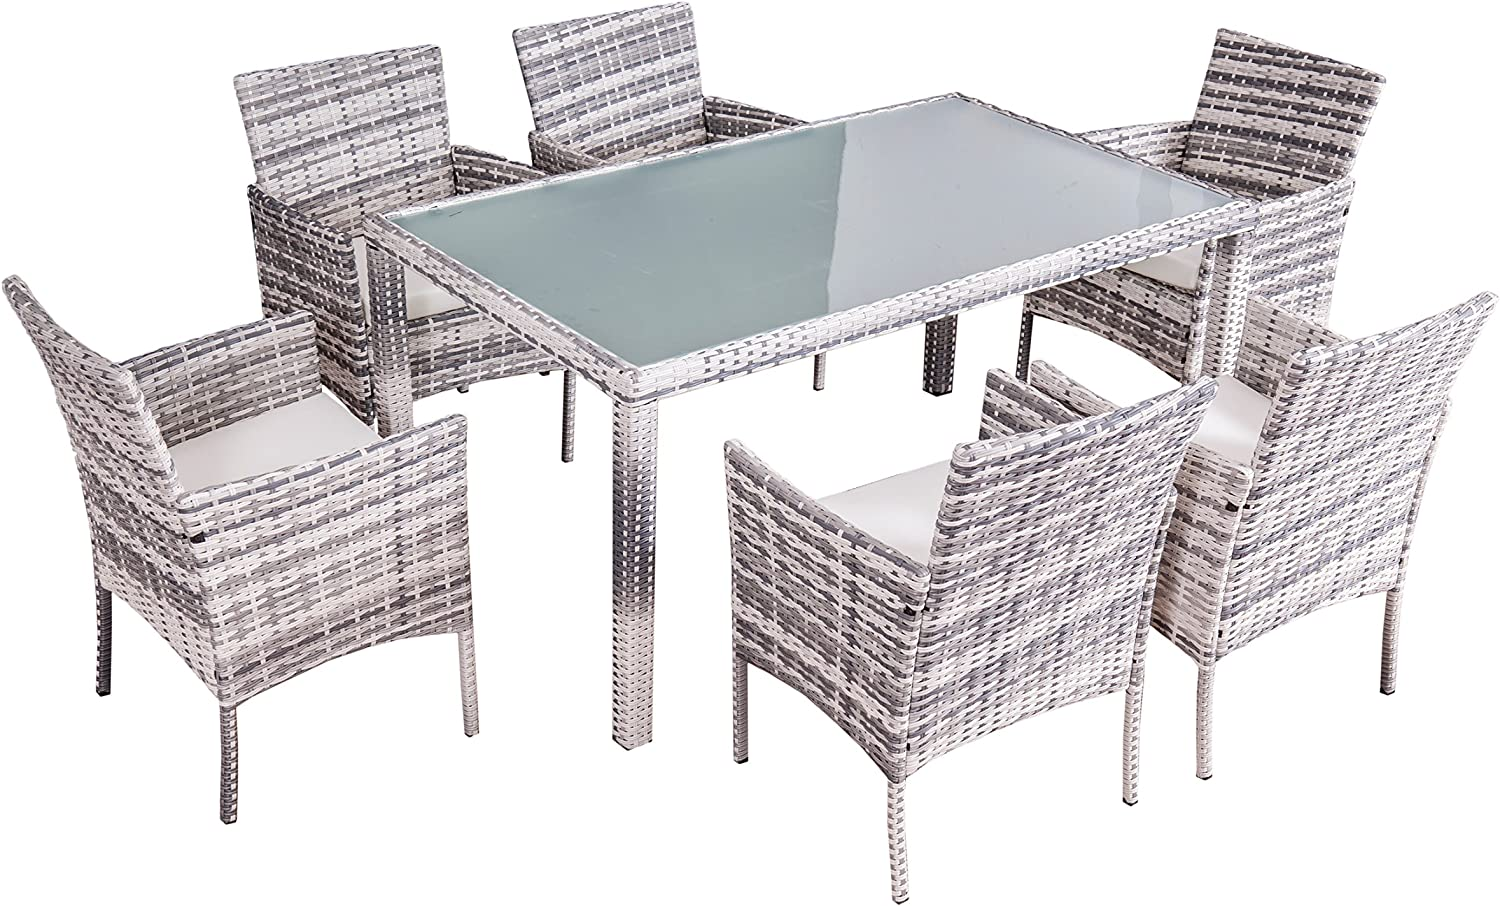 Garden Furniture Dining Set Mexico Jet Line High Quality Rundrattan Grey Rattan Table Top Safety Glass 6 Chairs Table 1 5 M Amazon De Garten